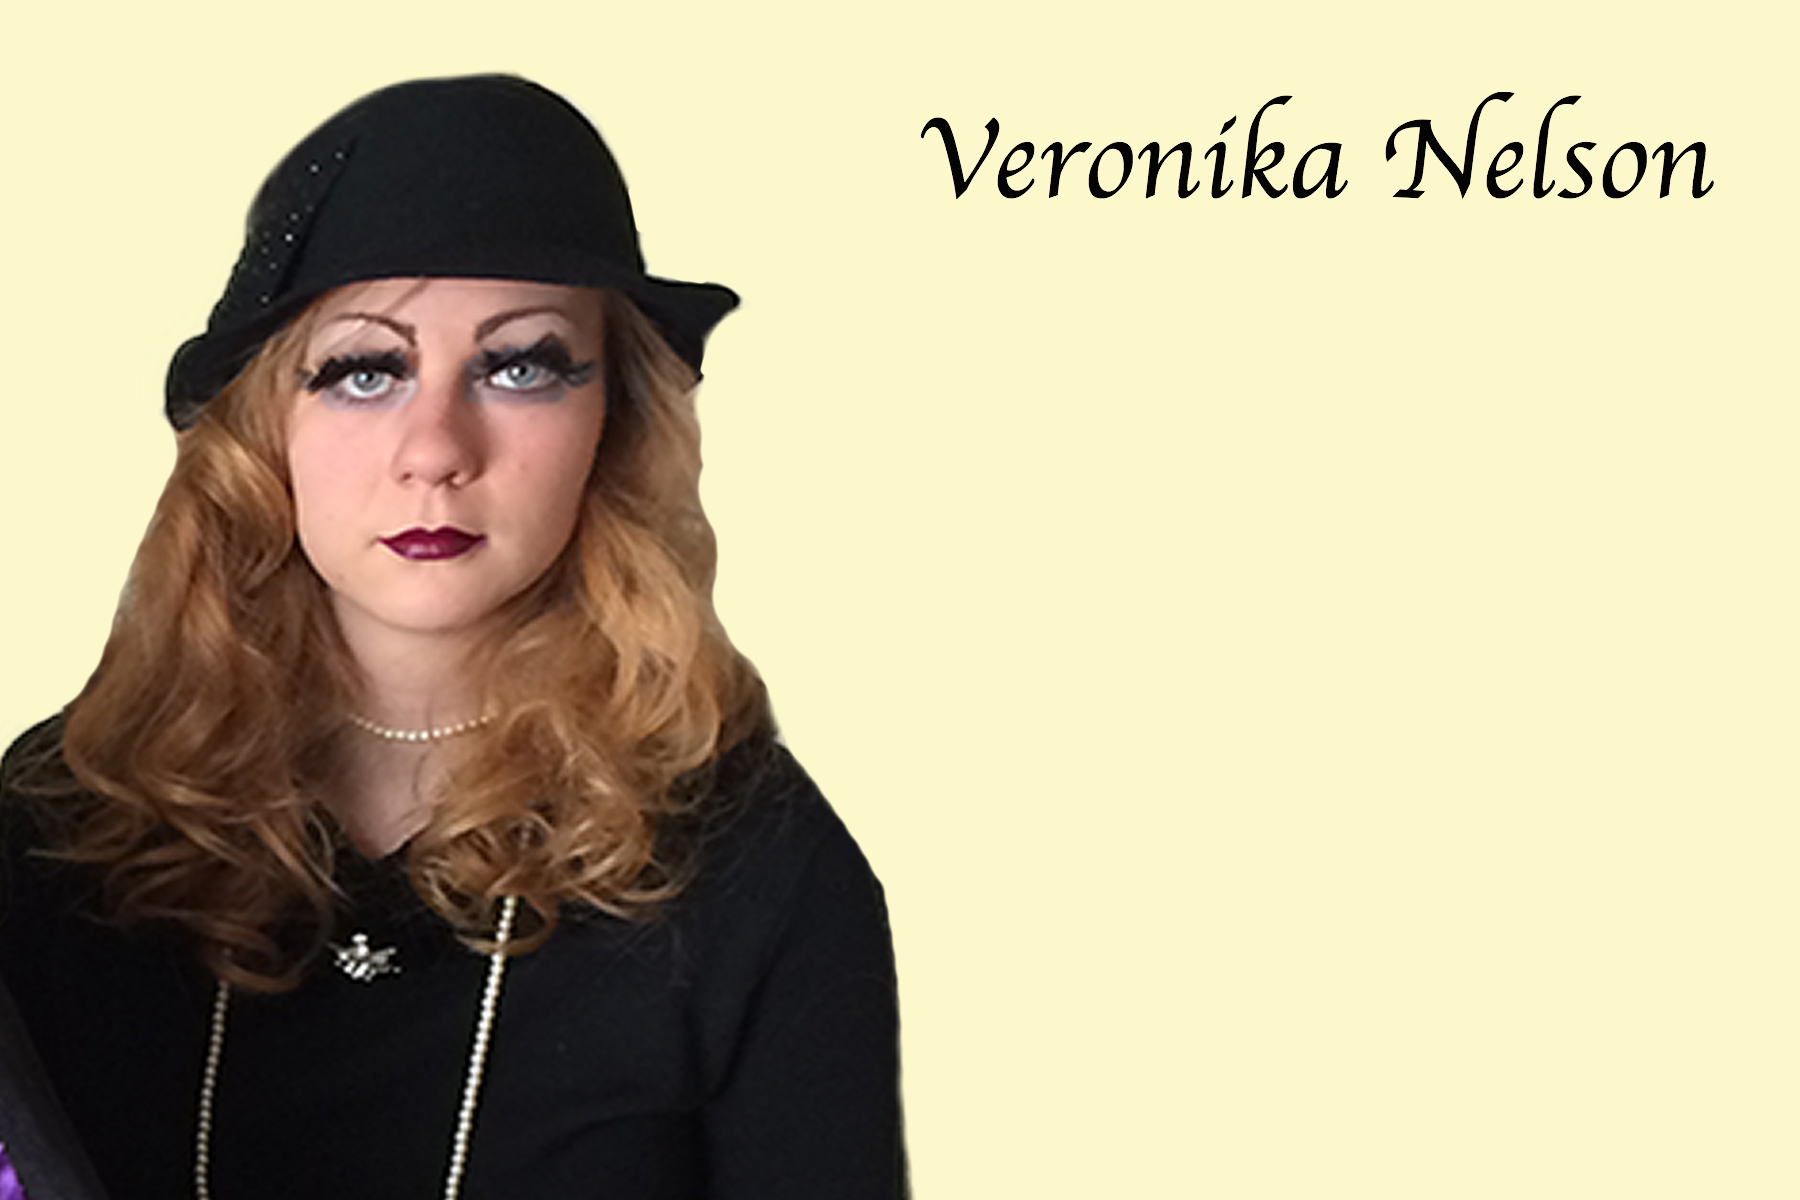 """Veronika has always had a love for performance.  She began acting in professional regional and union theaters in her early teens.  After attending the American Musical and Dramatic Academy of New York City, she performed in off-Broadway and Equity theaters where she worked and studied under well-known professionals.  Since being in Colorado she has performed all over the Front Range, and has a teaching position with The Arvada Center for Arts and Humanities and Virtuosity Dance Centre.  Her favorite roles include Carla in  I Never Promised You a Rose Garden , Yvonne in Neil Simon's  Dinner Party , Ellie in  Showboat , and a trio of roles in Stoppard's  Coast of Utopia .  She would like to thank all of the """"lovely people along the way for getting me where I am today."""""""